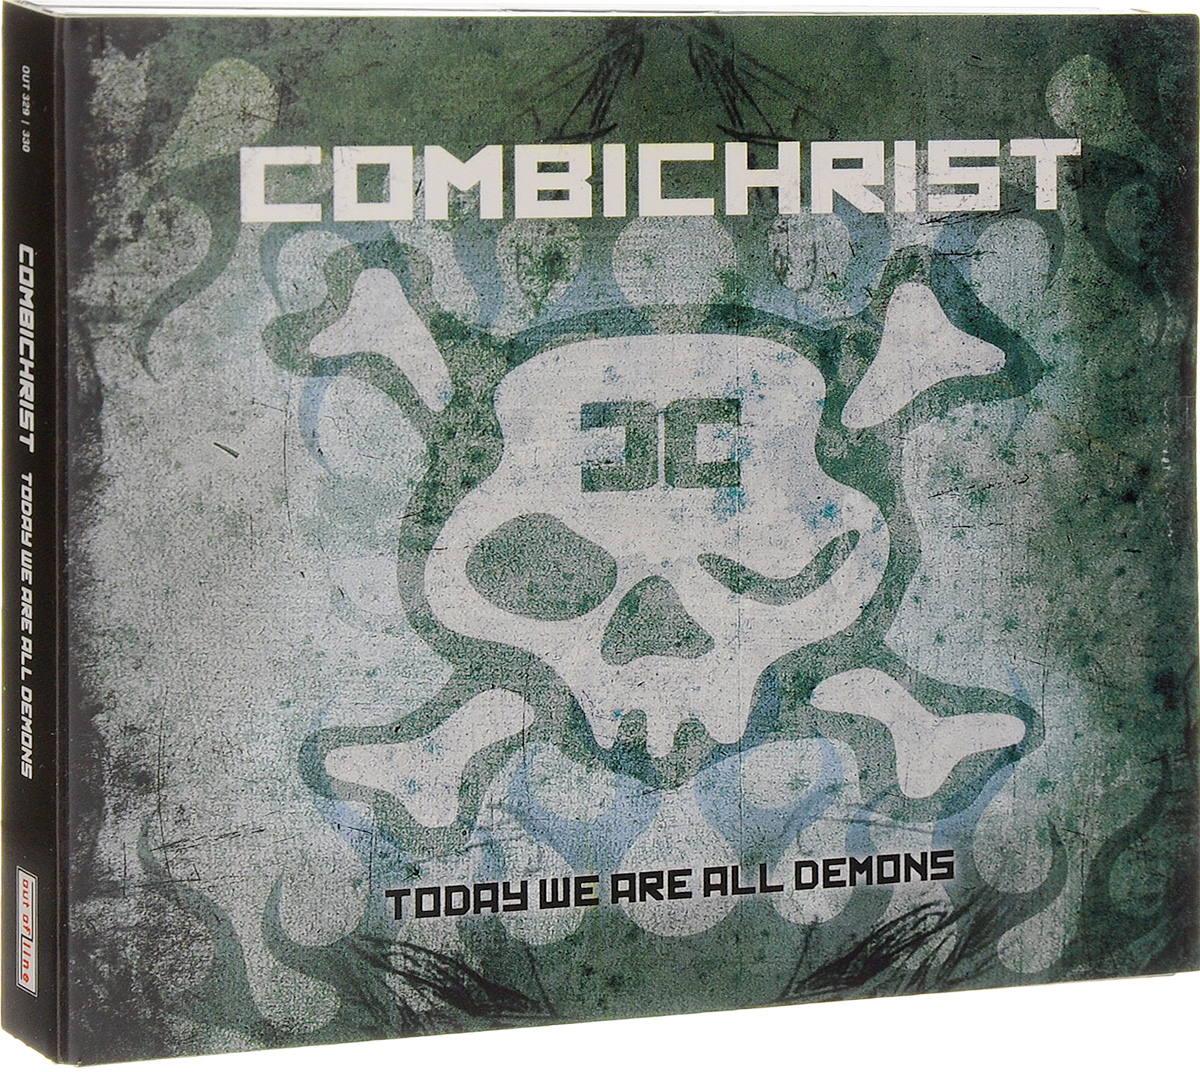 Combichrist Combichrist. Today We Are All Demons. Deluxe Edition (2 CD)